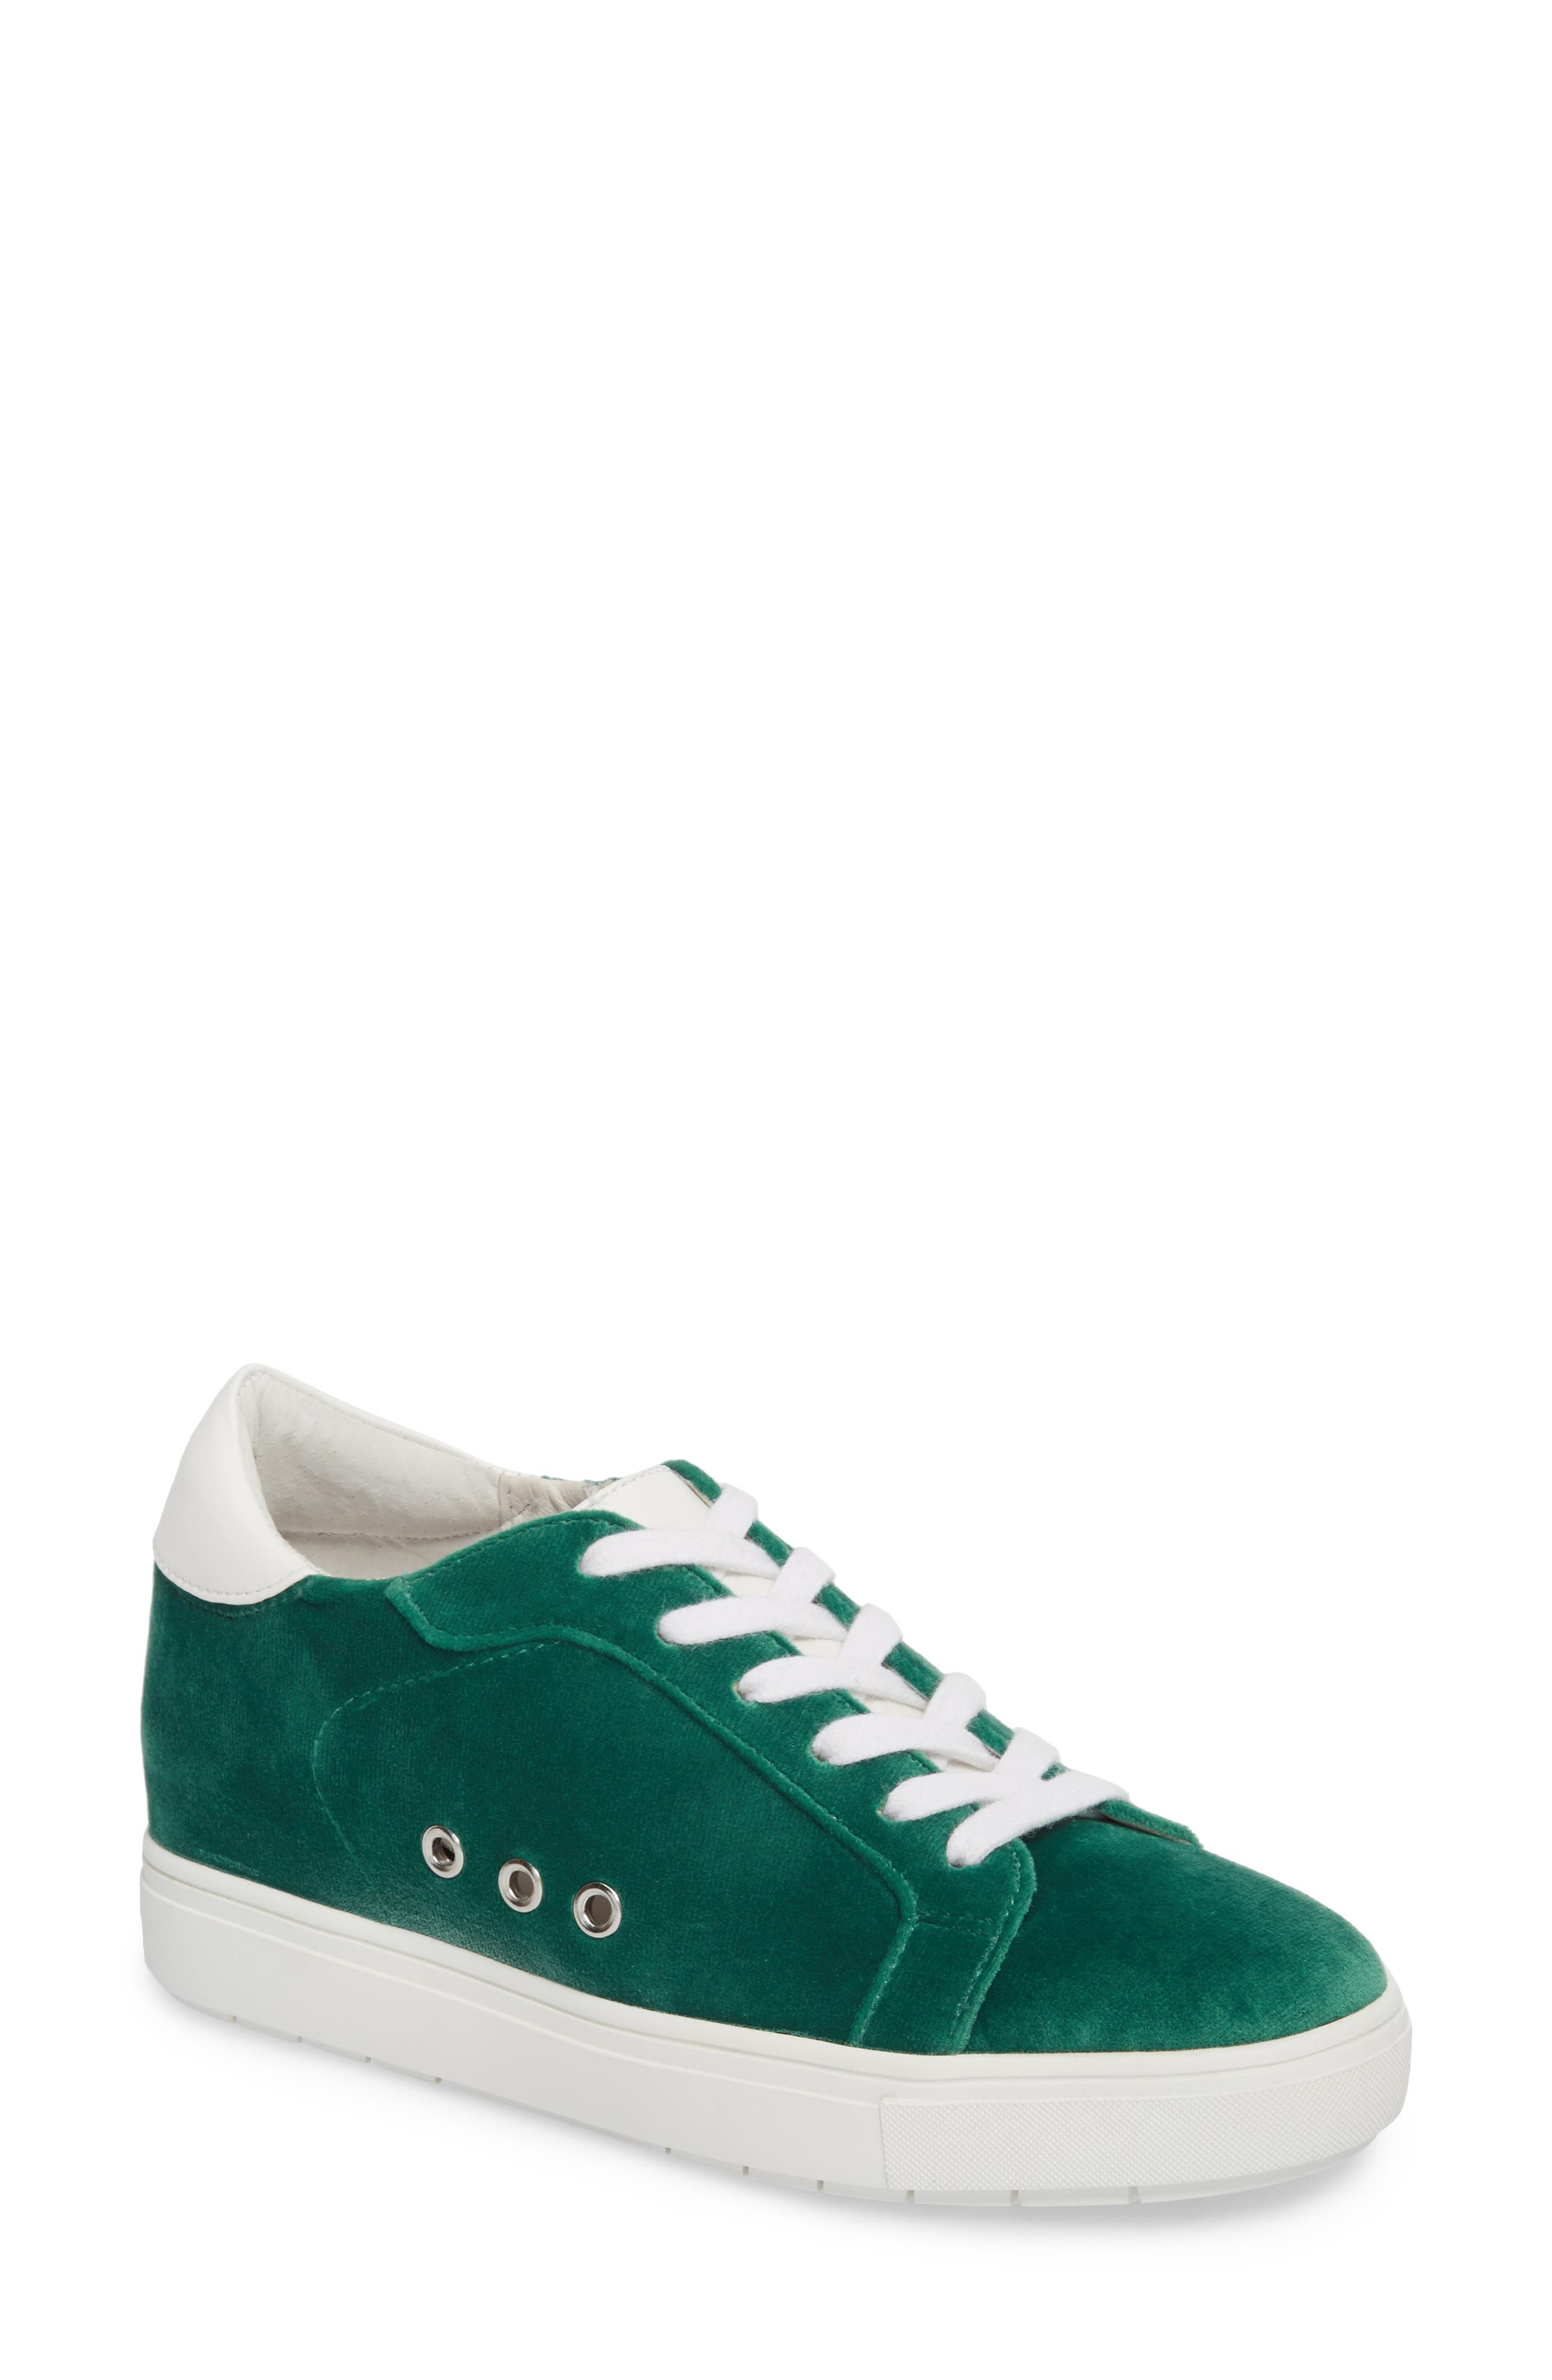 Steal Concealed Wedge Sneaker,                             Main thumbnail 2, color,